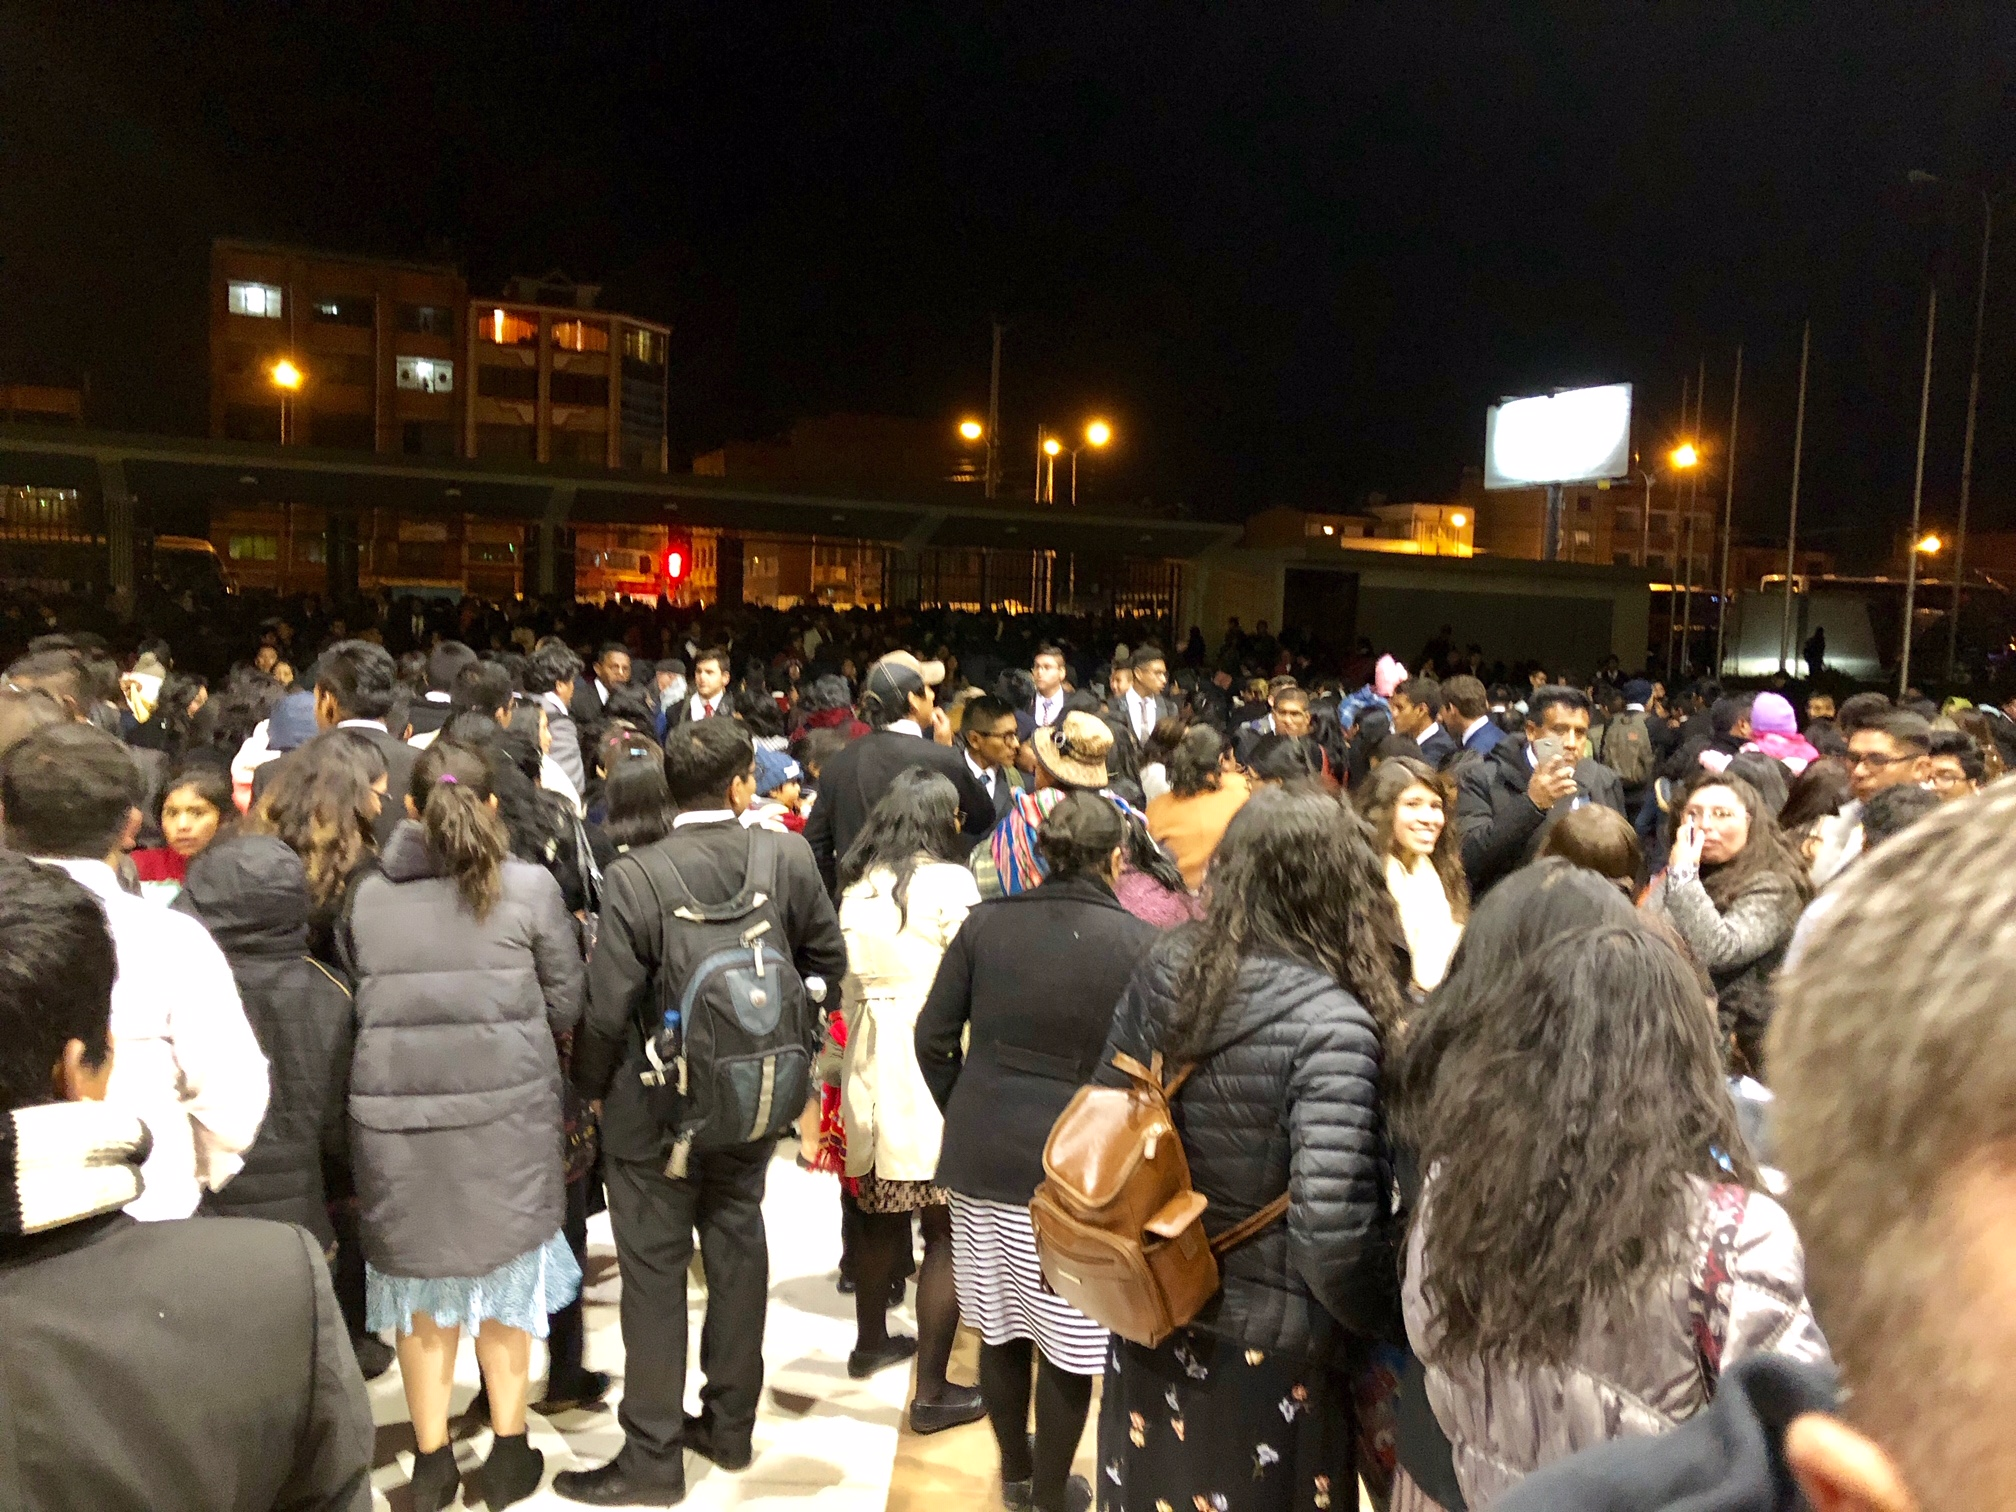 Crowds outside the Polideportivo Heroes de Octubre in El Alto on Sunday, Oct. 21 where President Nelson spoke.